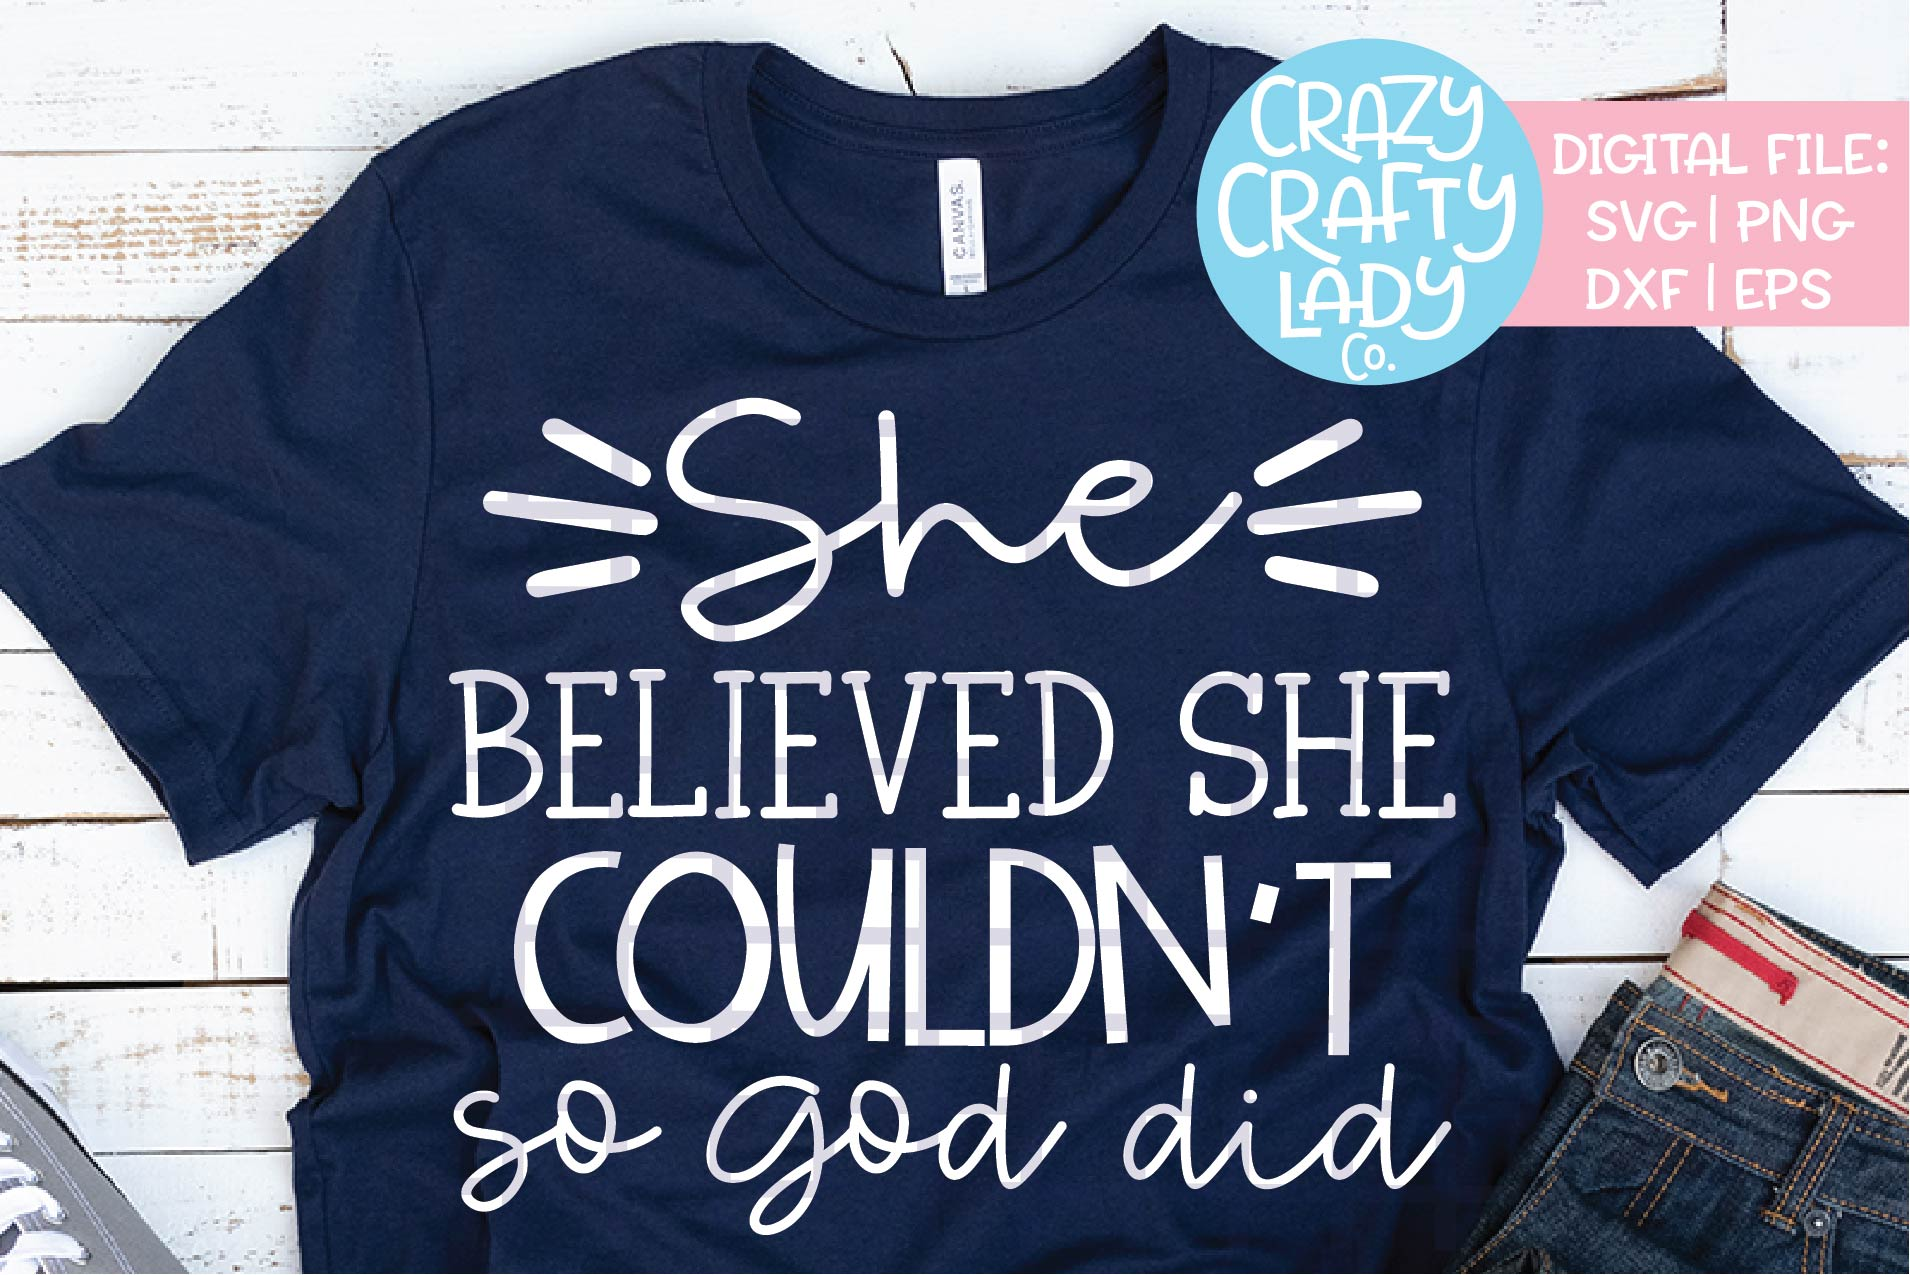 She Believed She Couldn't So God SVG DXF EPS PNG Cut File example image 1